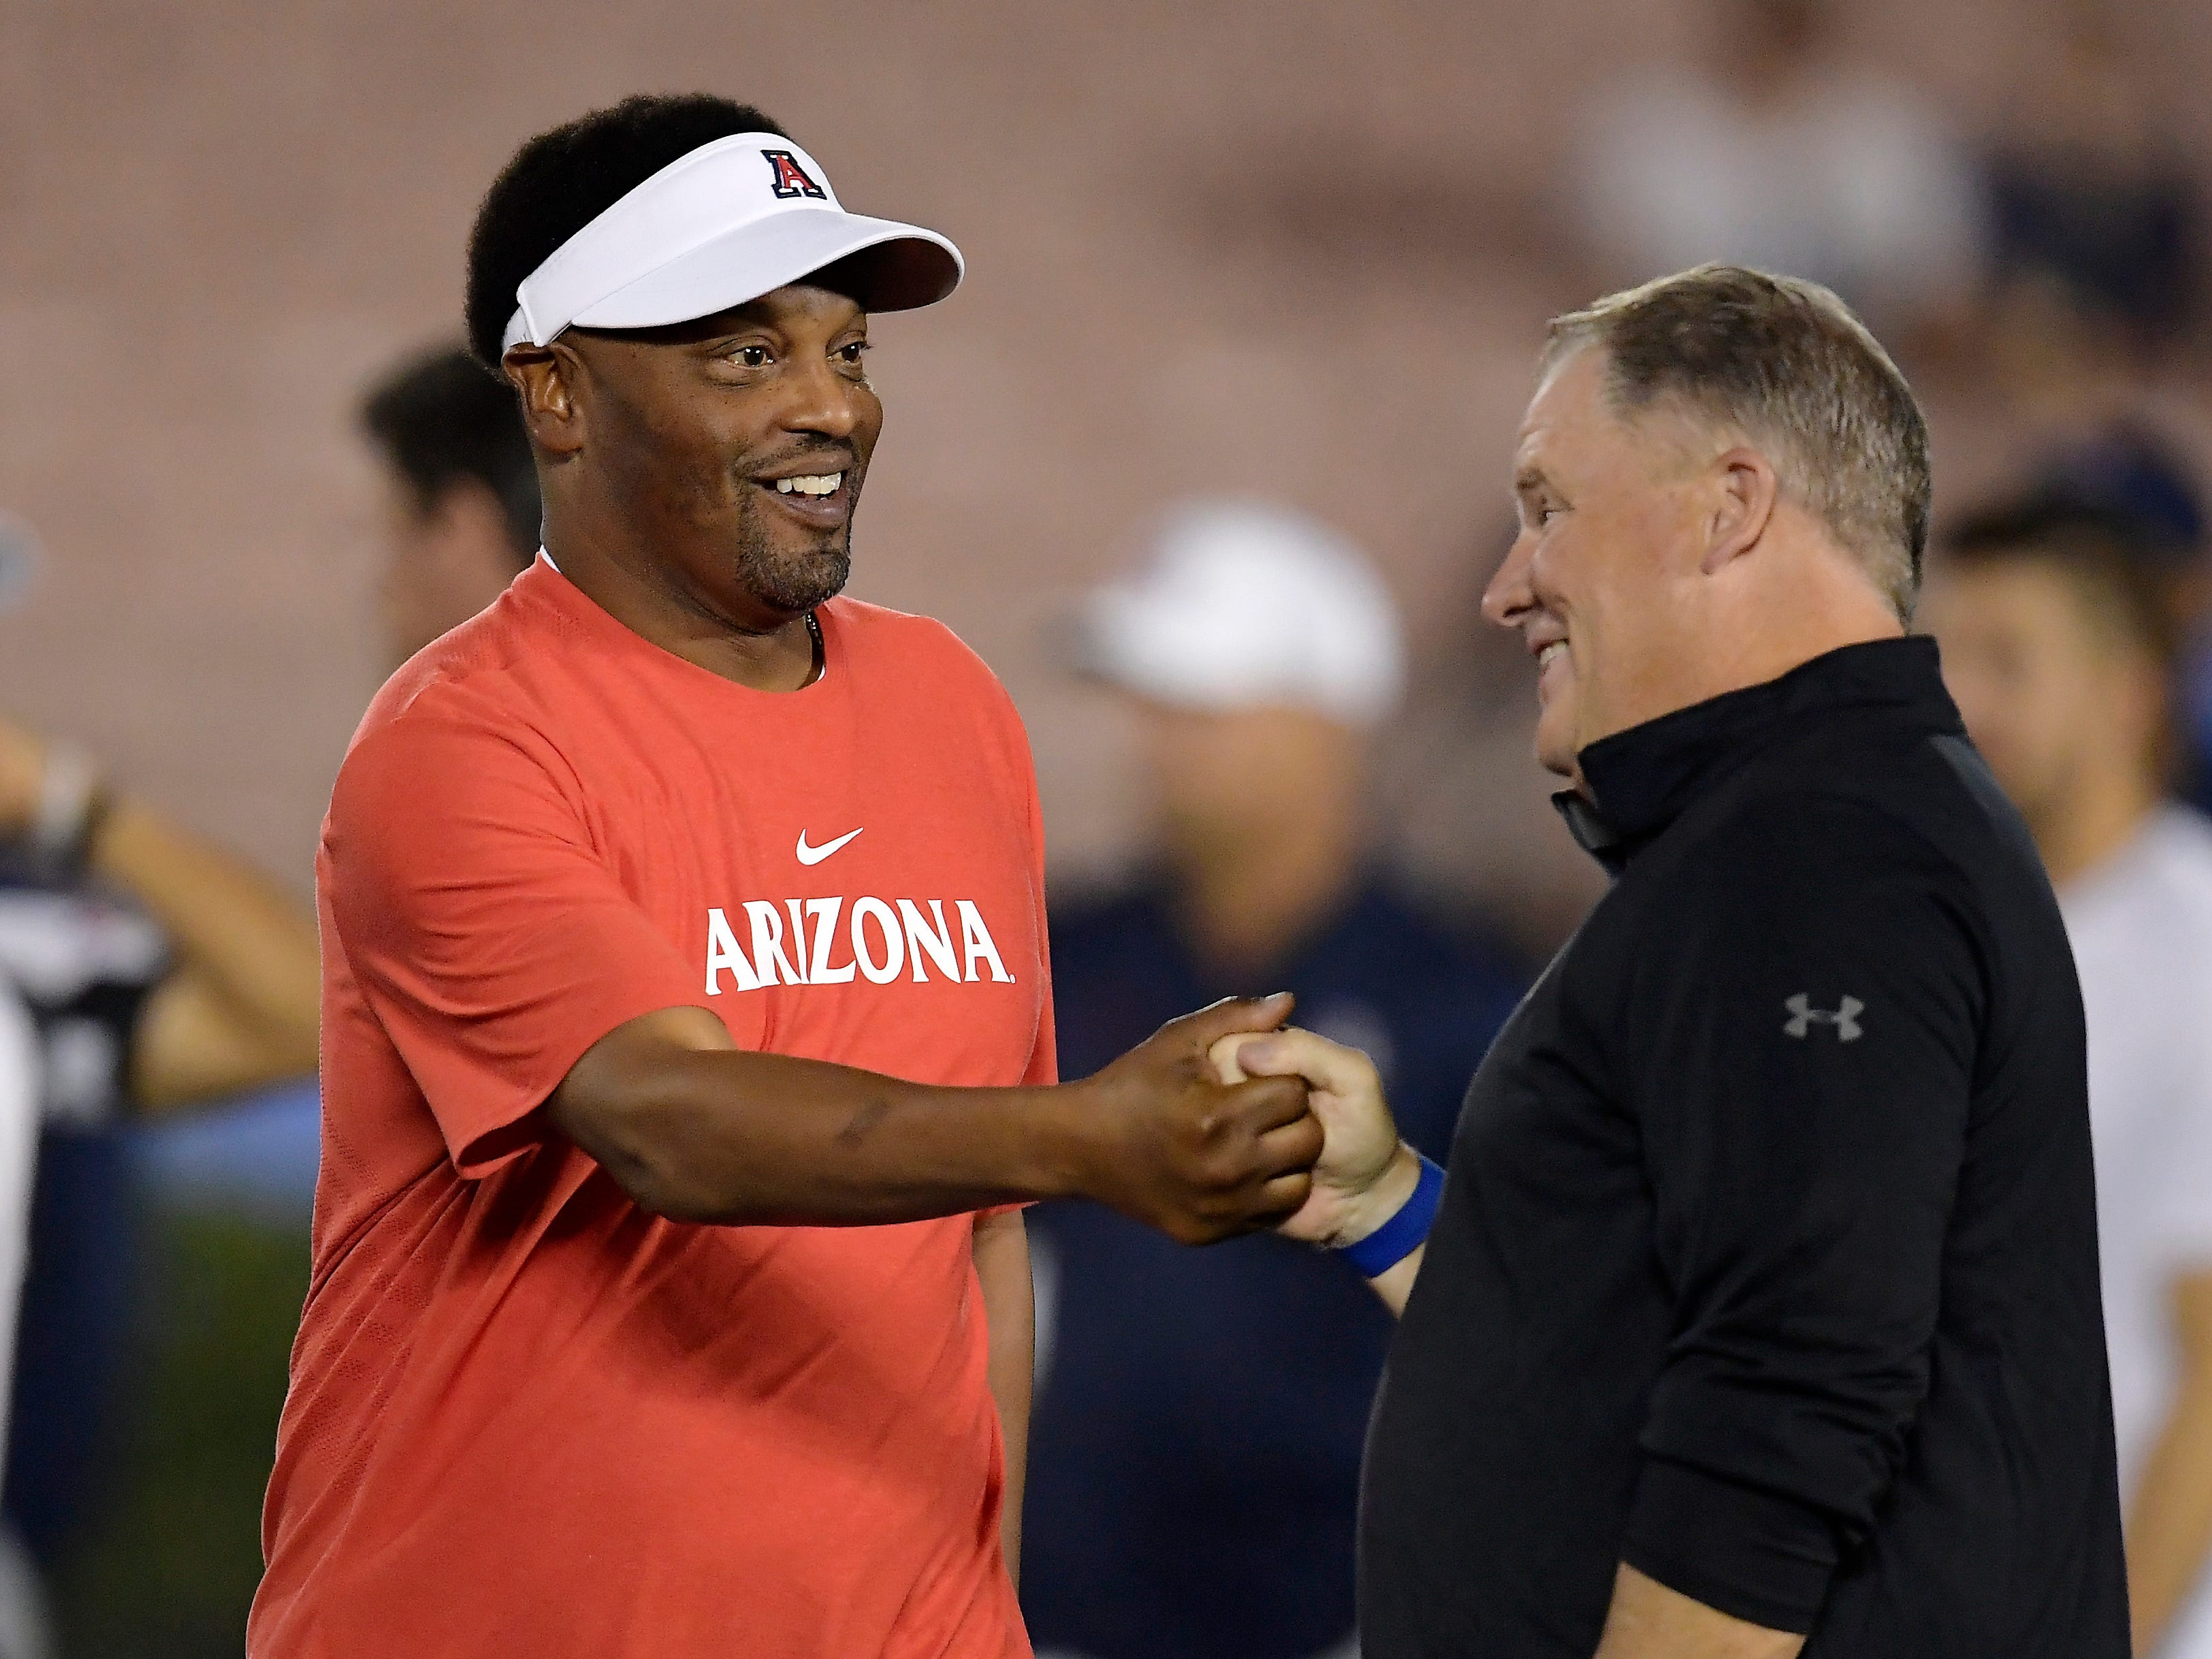 Arizona head coach Kevin Sumlin, left, talks with UCLA head coach Chip Kelly prior to an NCAA college football game Saturday, Oct. 20, 2018, in Pasadena, Calif. (AP Photo/Mark J. Terrill)